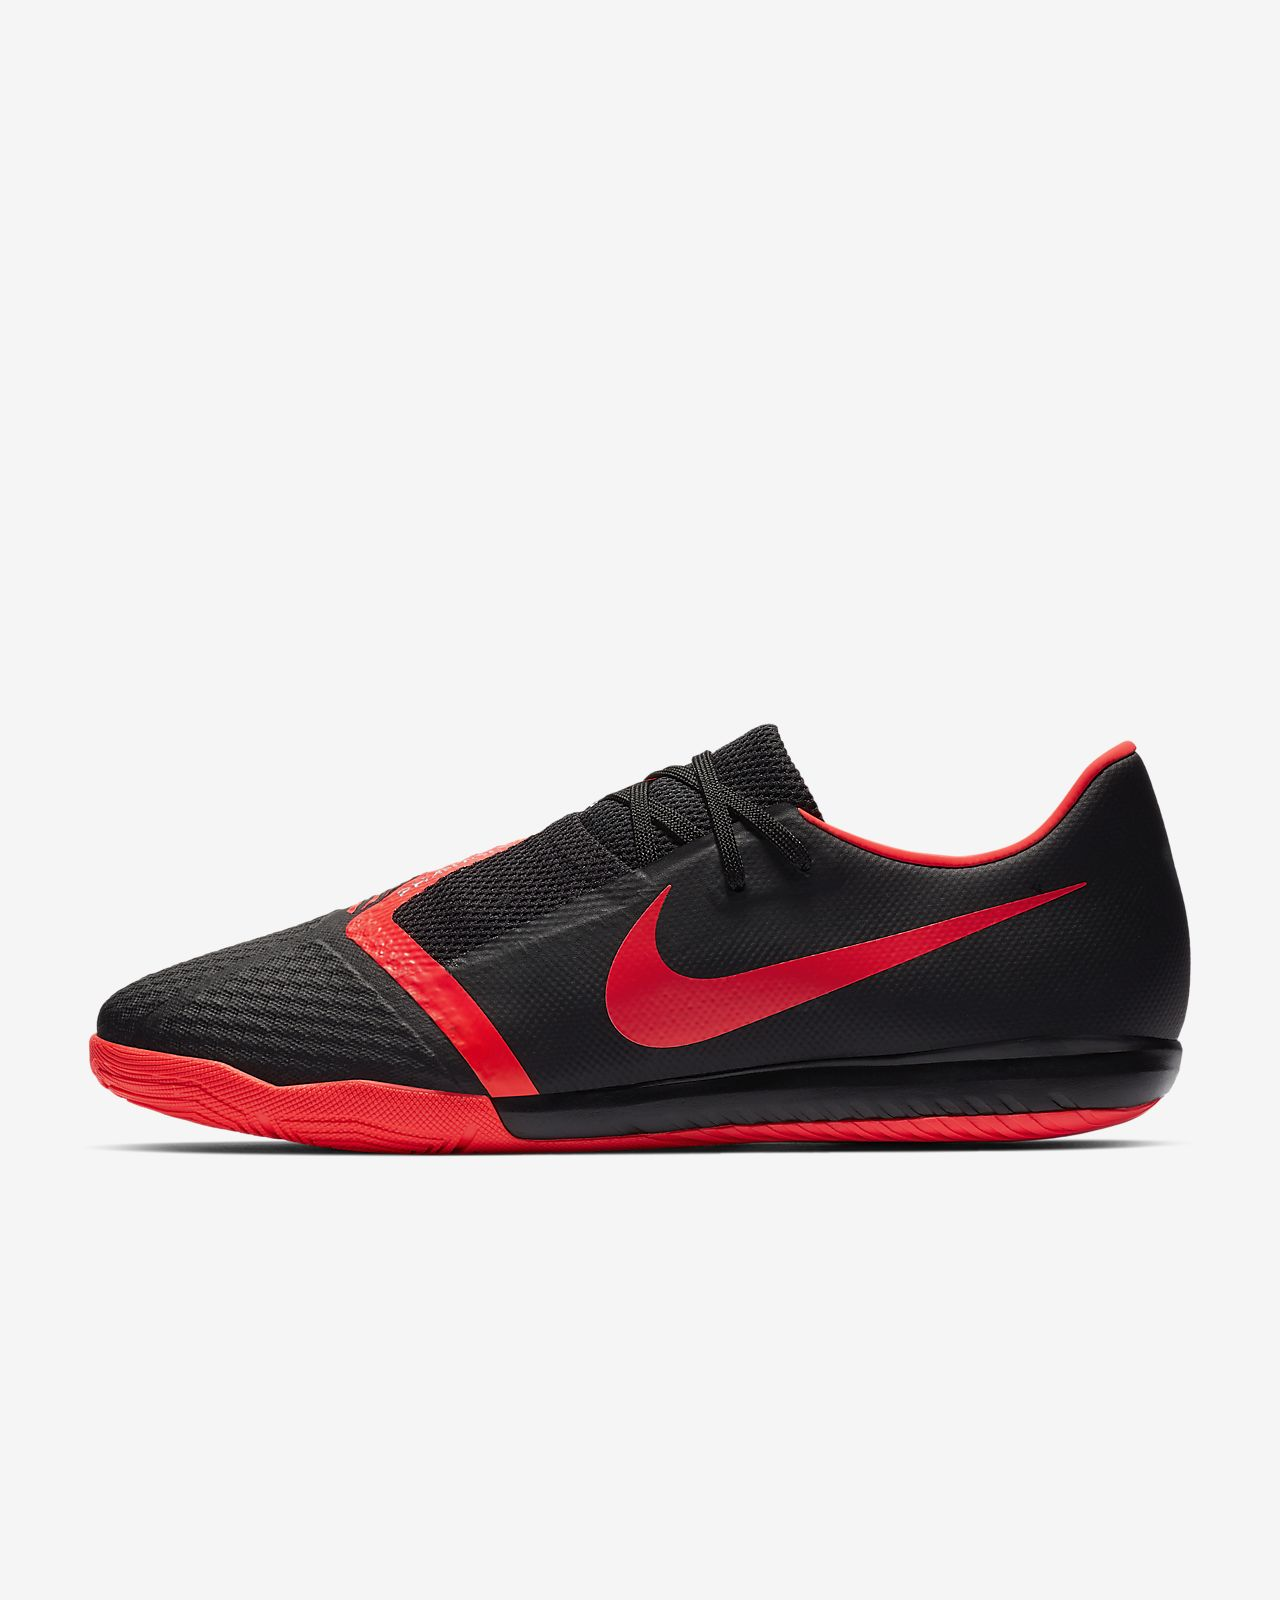 Nike Phantom Venom Academy IC Indoor/Court Football Boot